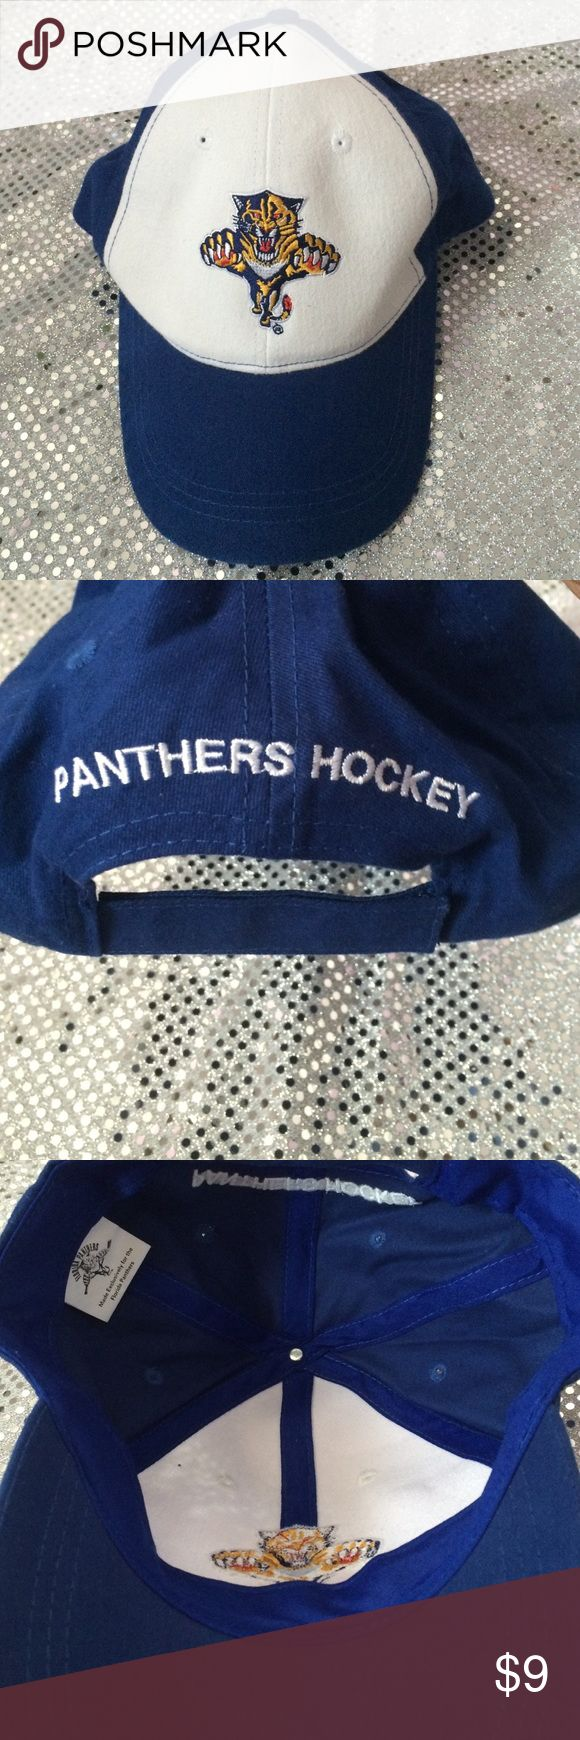 Panthers Hockey Hat Bought but never worn, it was just a souvenir. Accessories